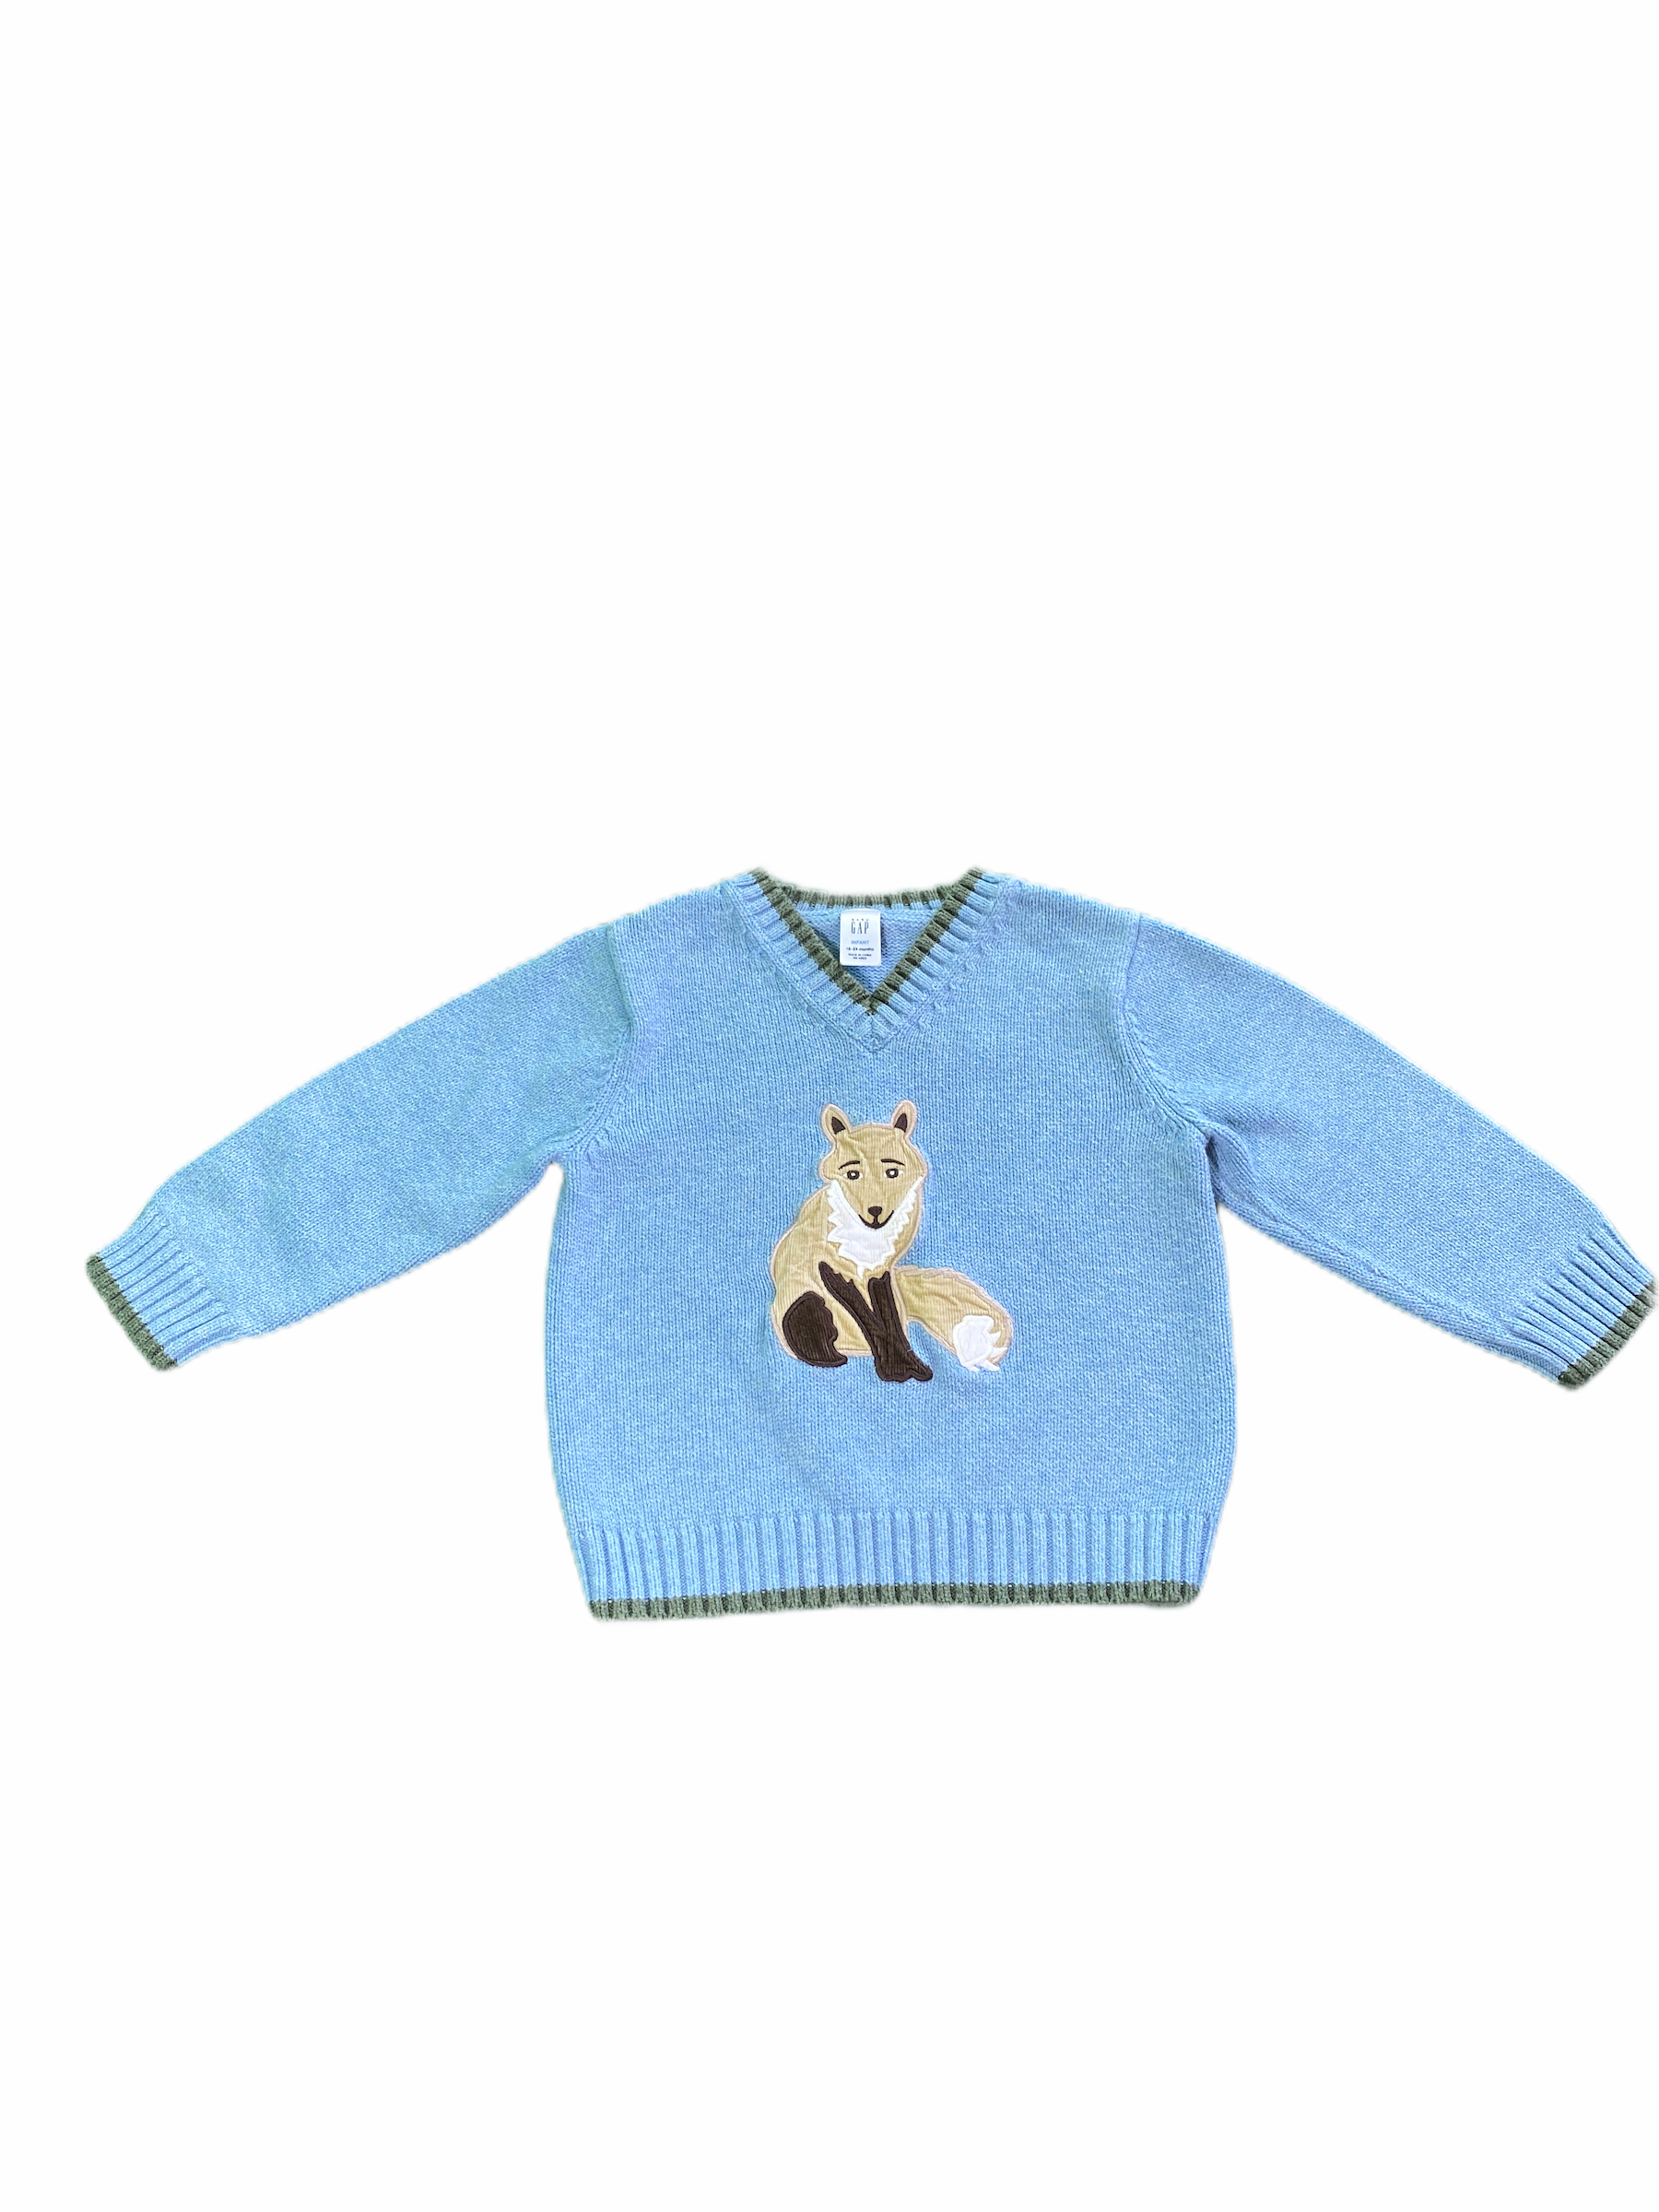 Gap Blue Fox Sweater (18/24M Boys)